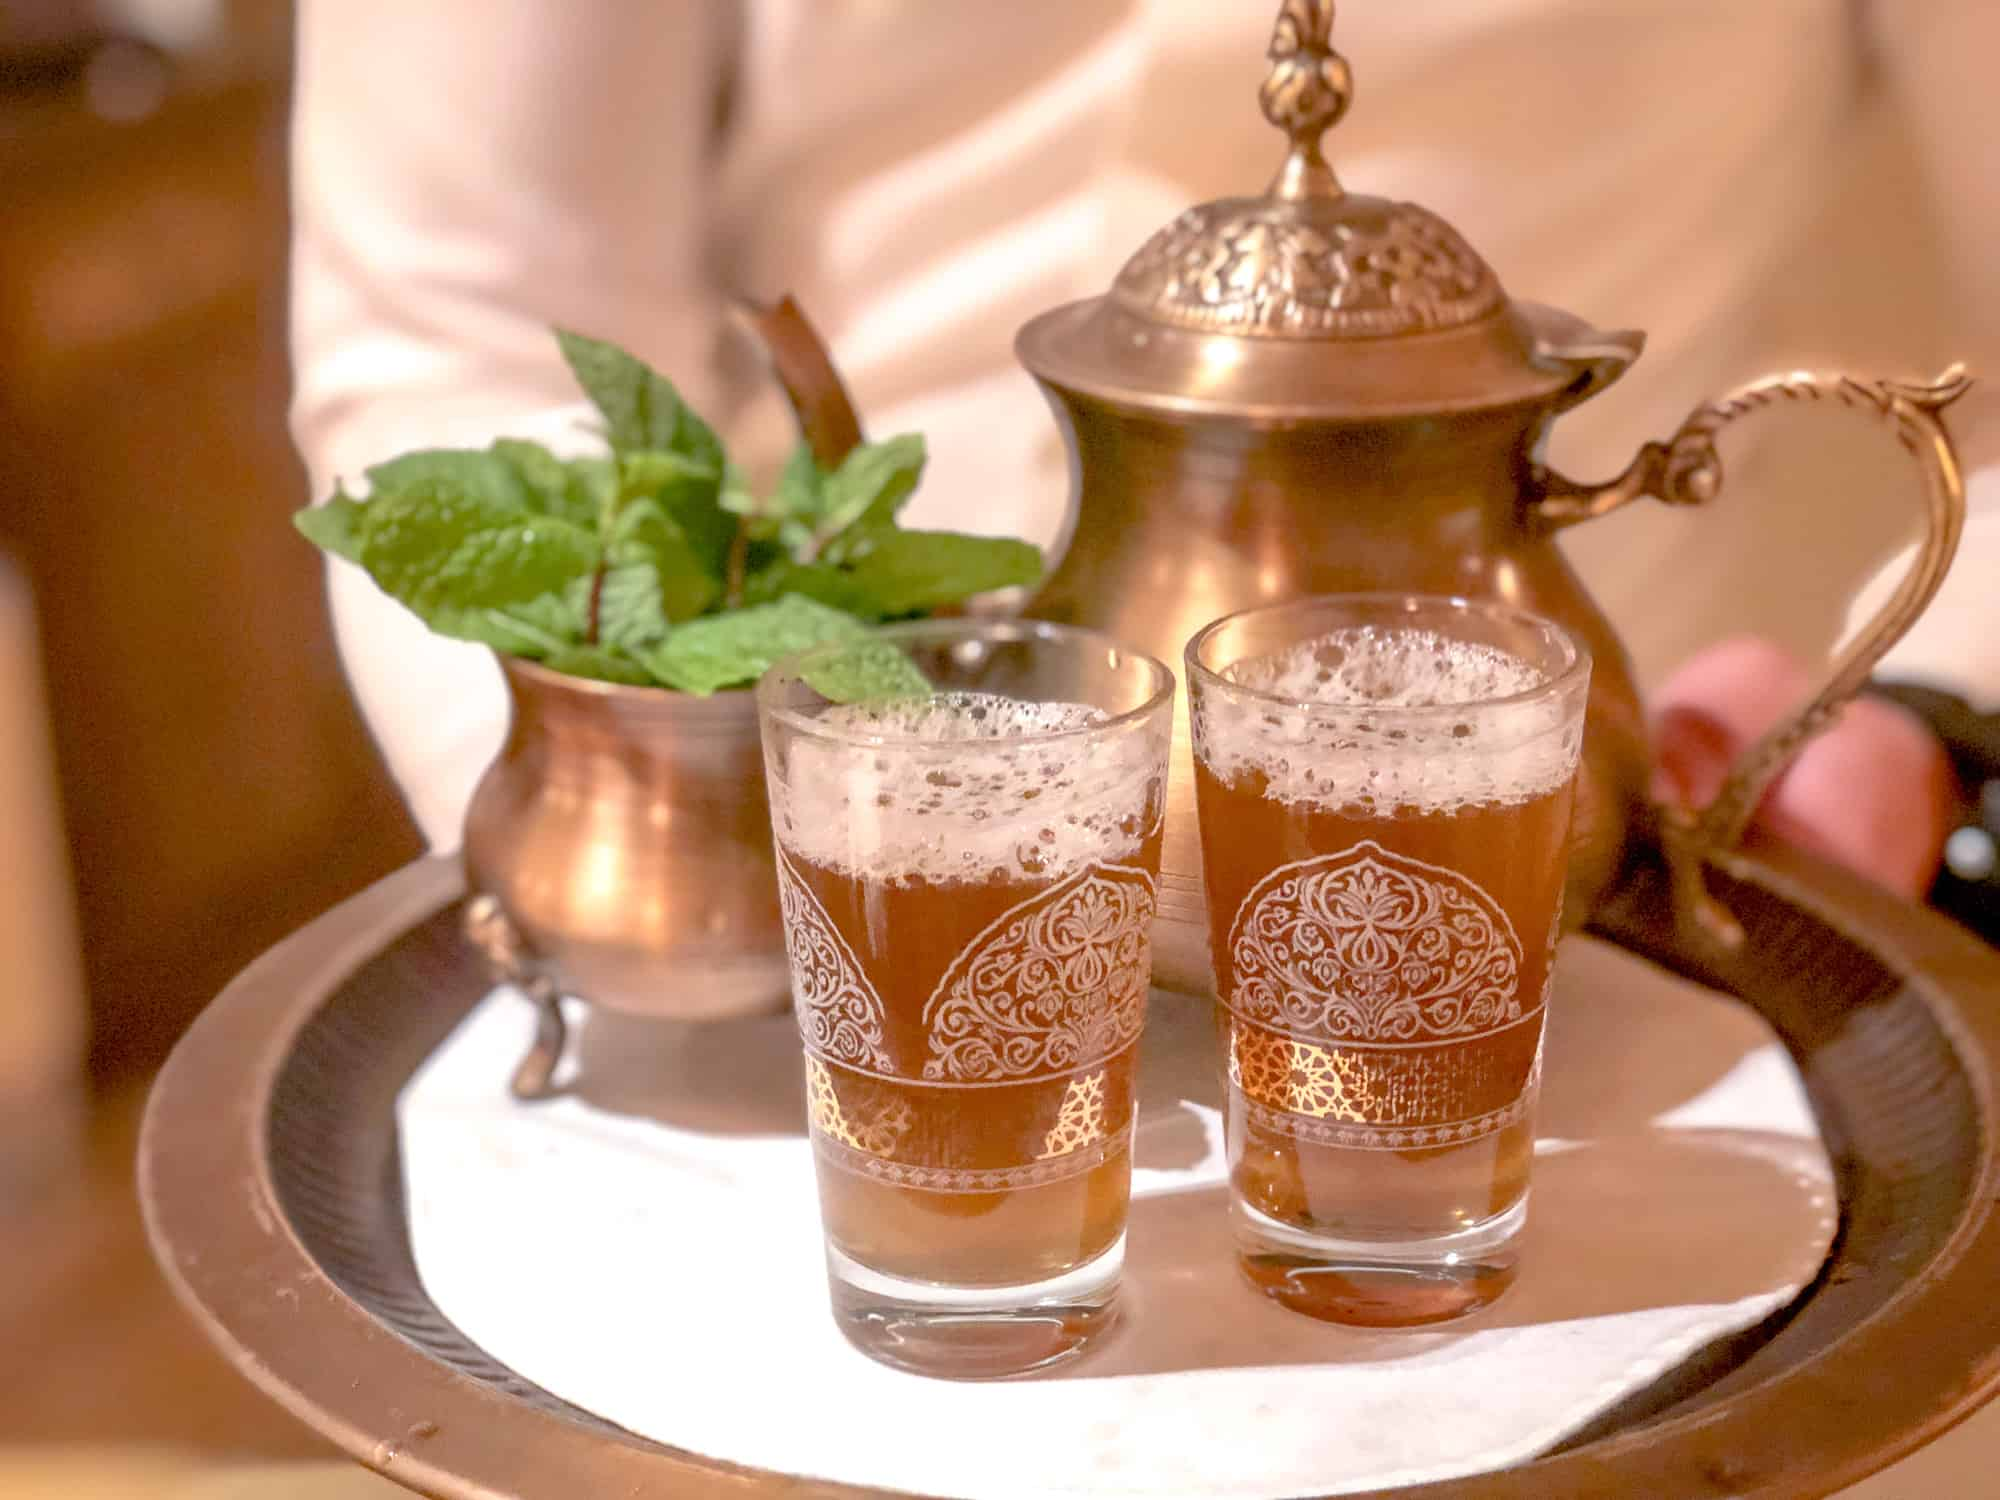 Food and drink quiz questions - woman in Borneo - round the world food questions - mint tea in the Middle East